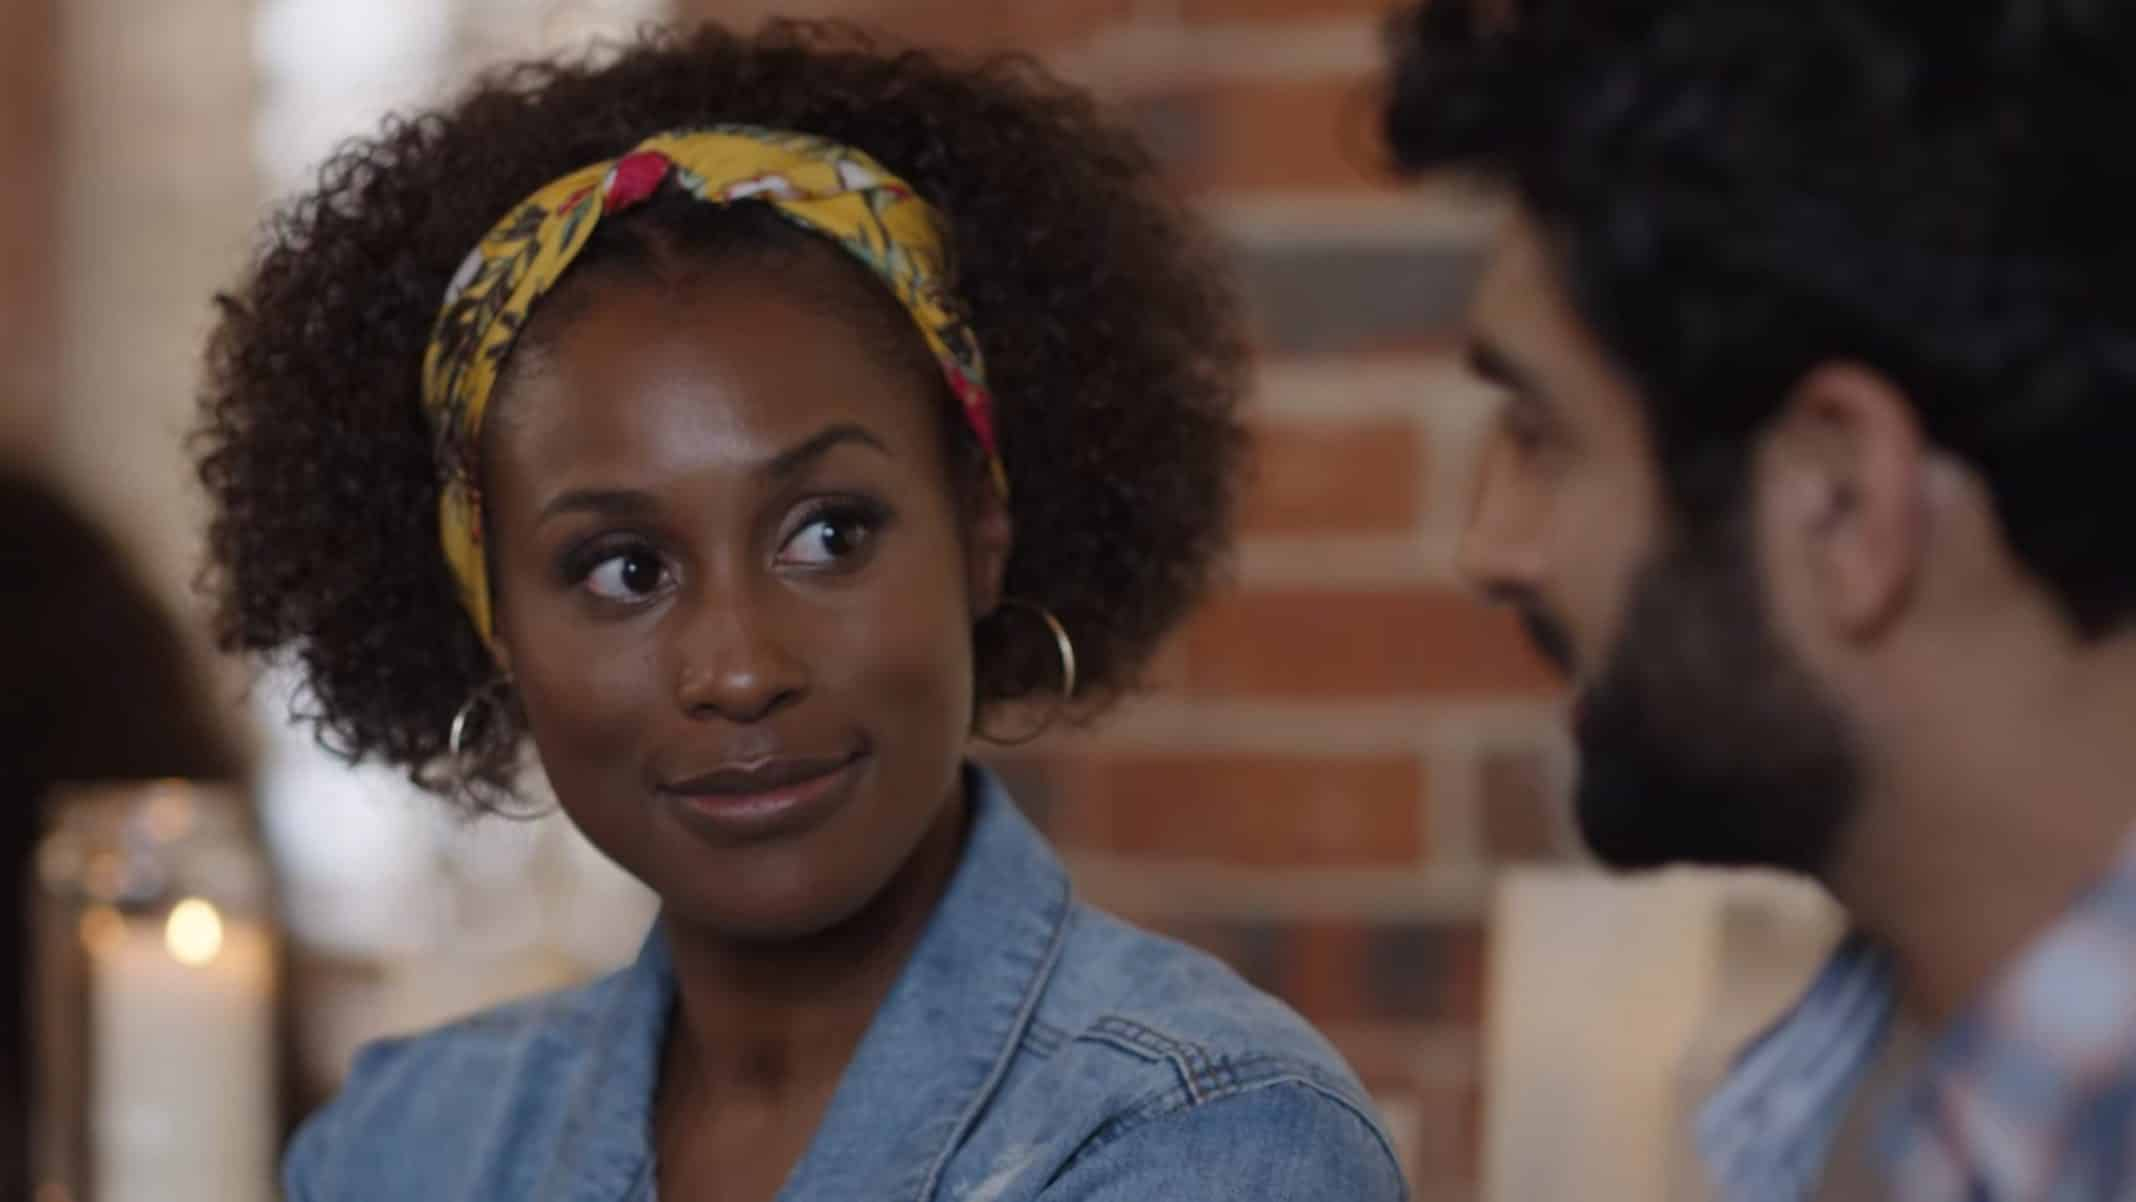 Leilani (Issa Rae) on a date.